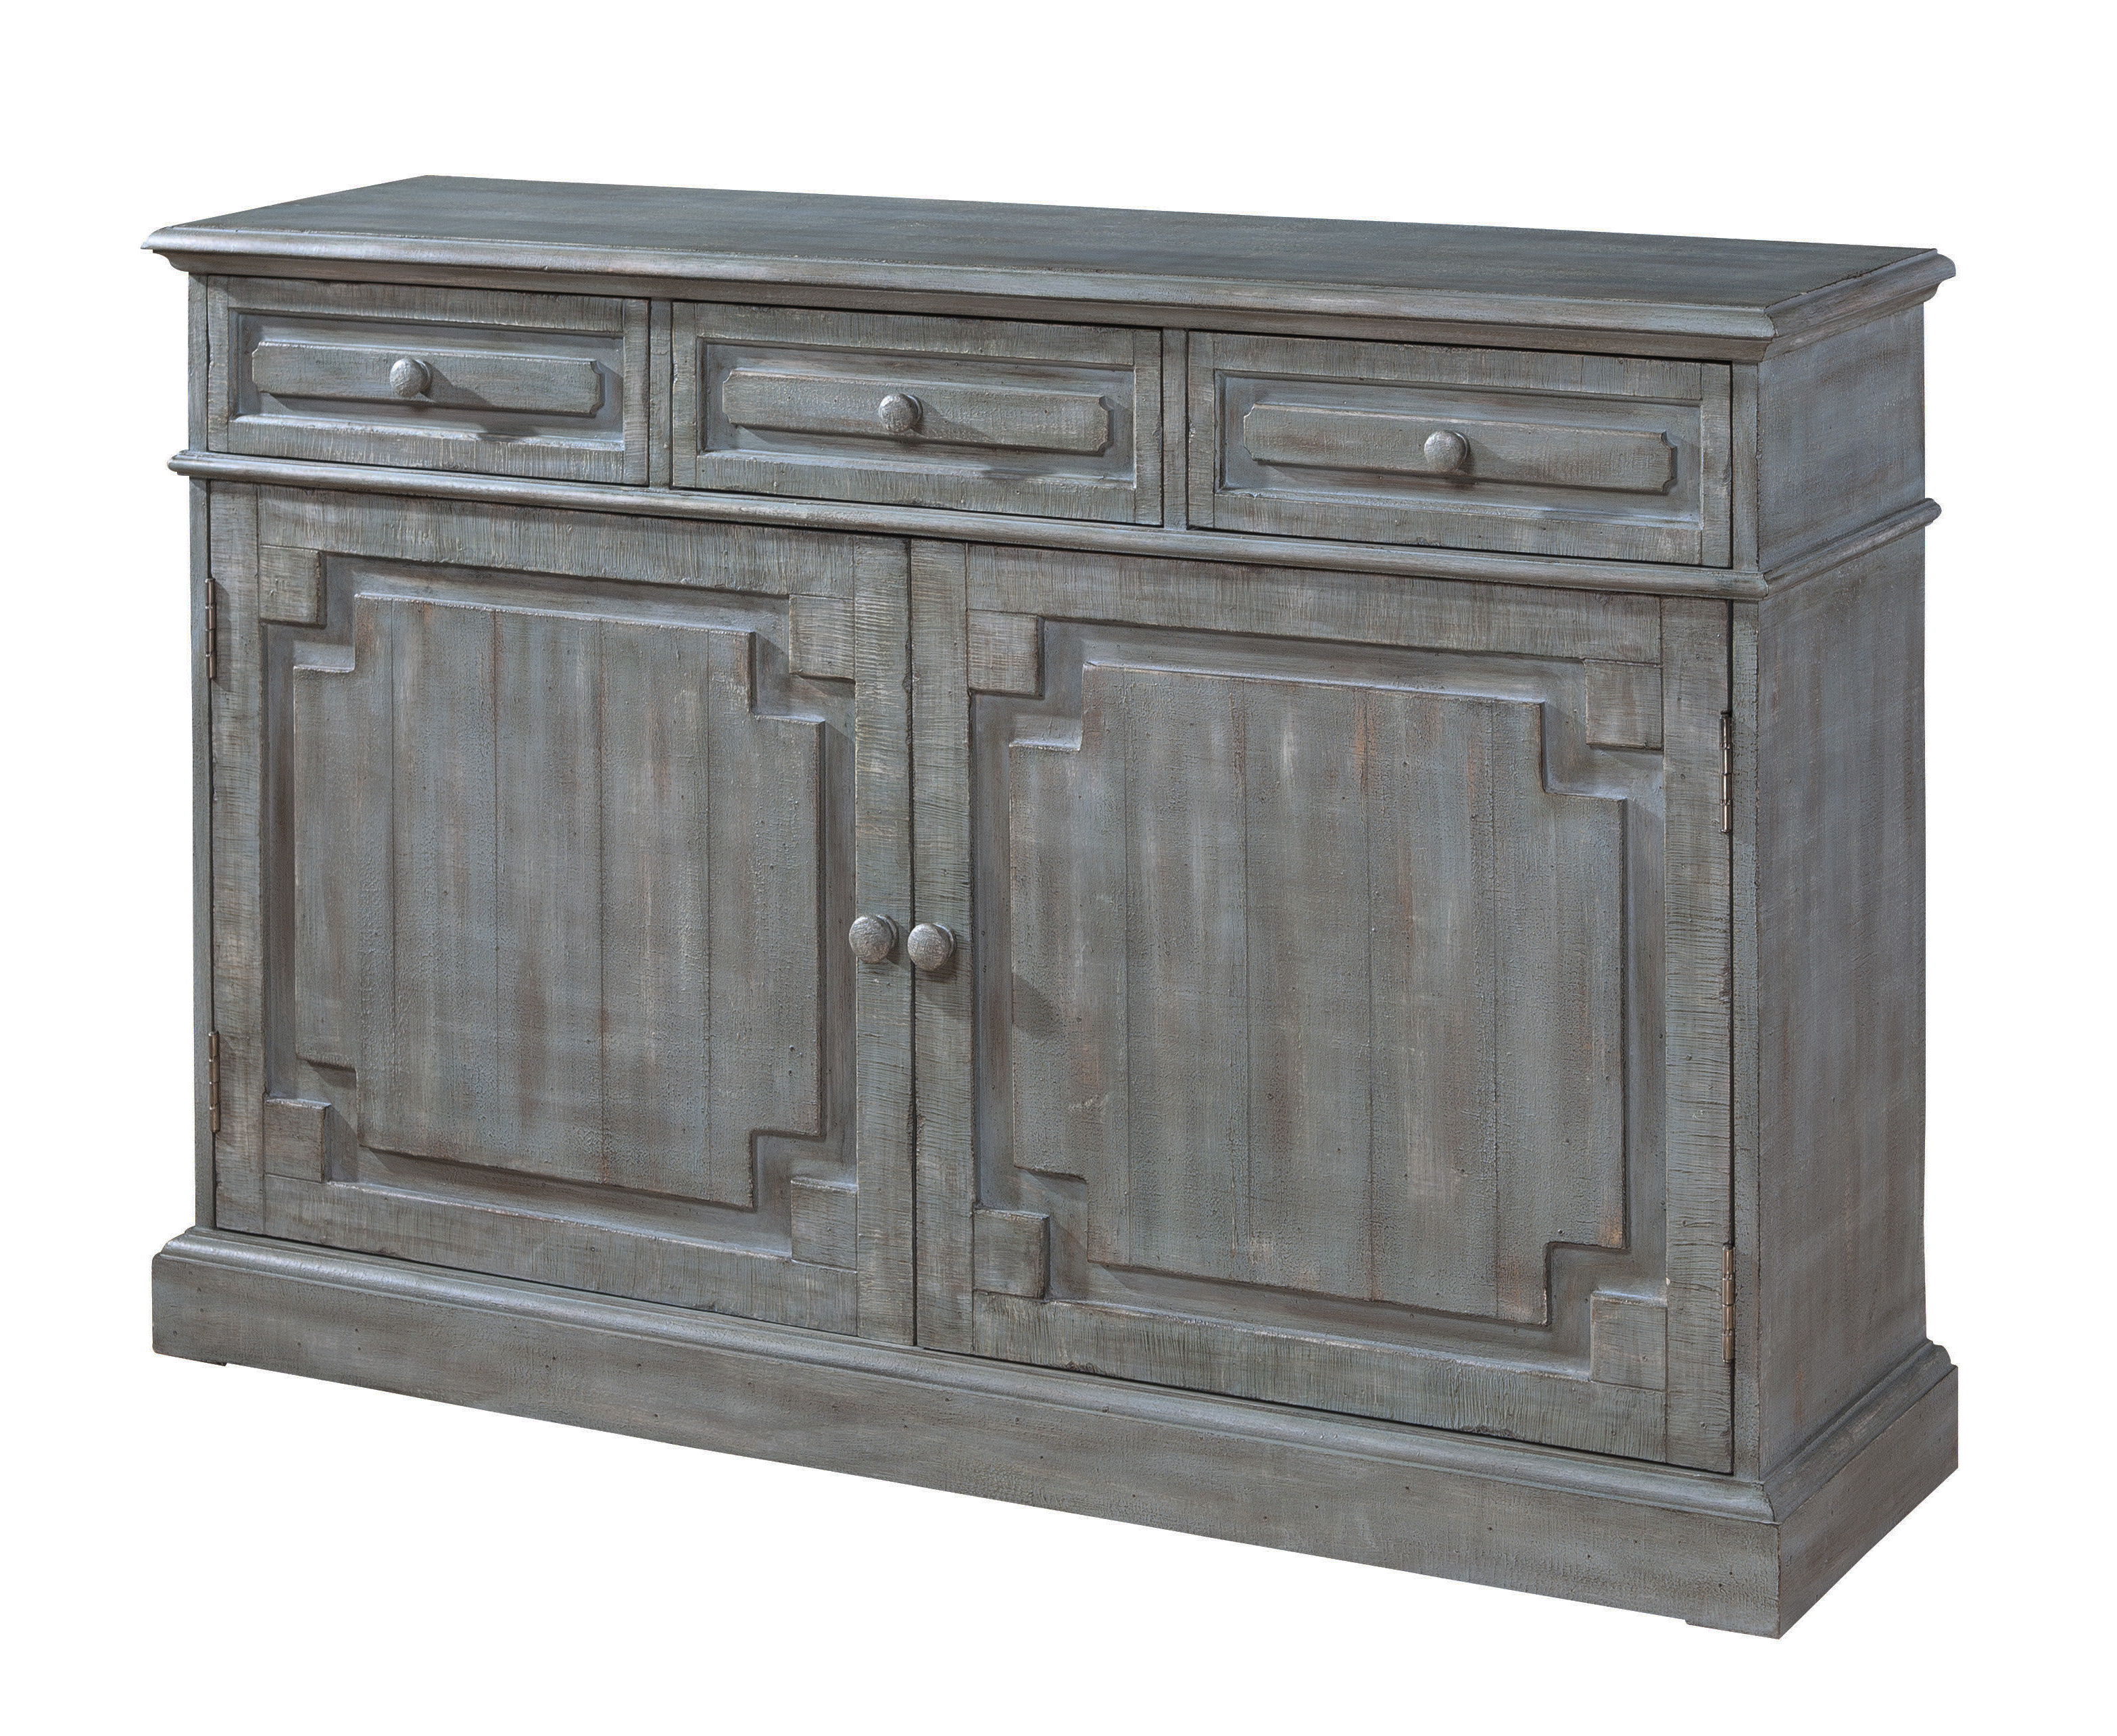 Mistana Adelbert Credenza Pertaining To Most Up To Date Caines Credenzas (Gallery 10 of 20)